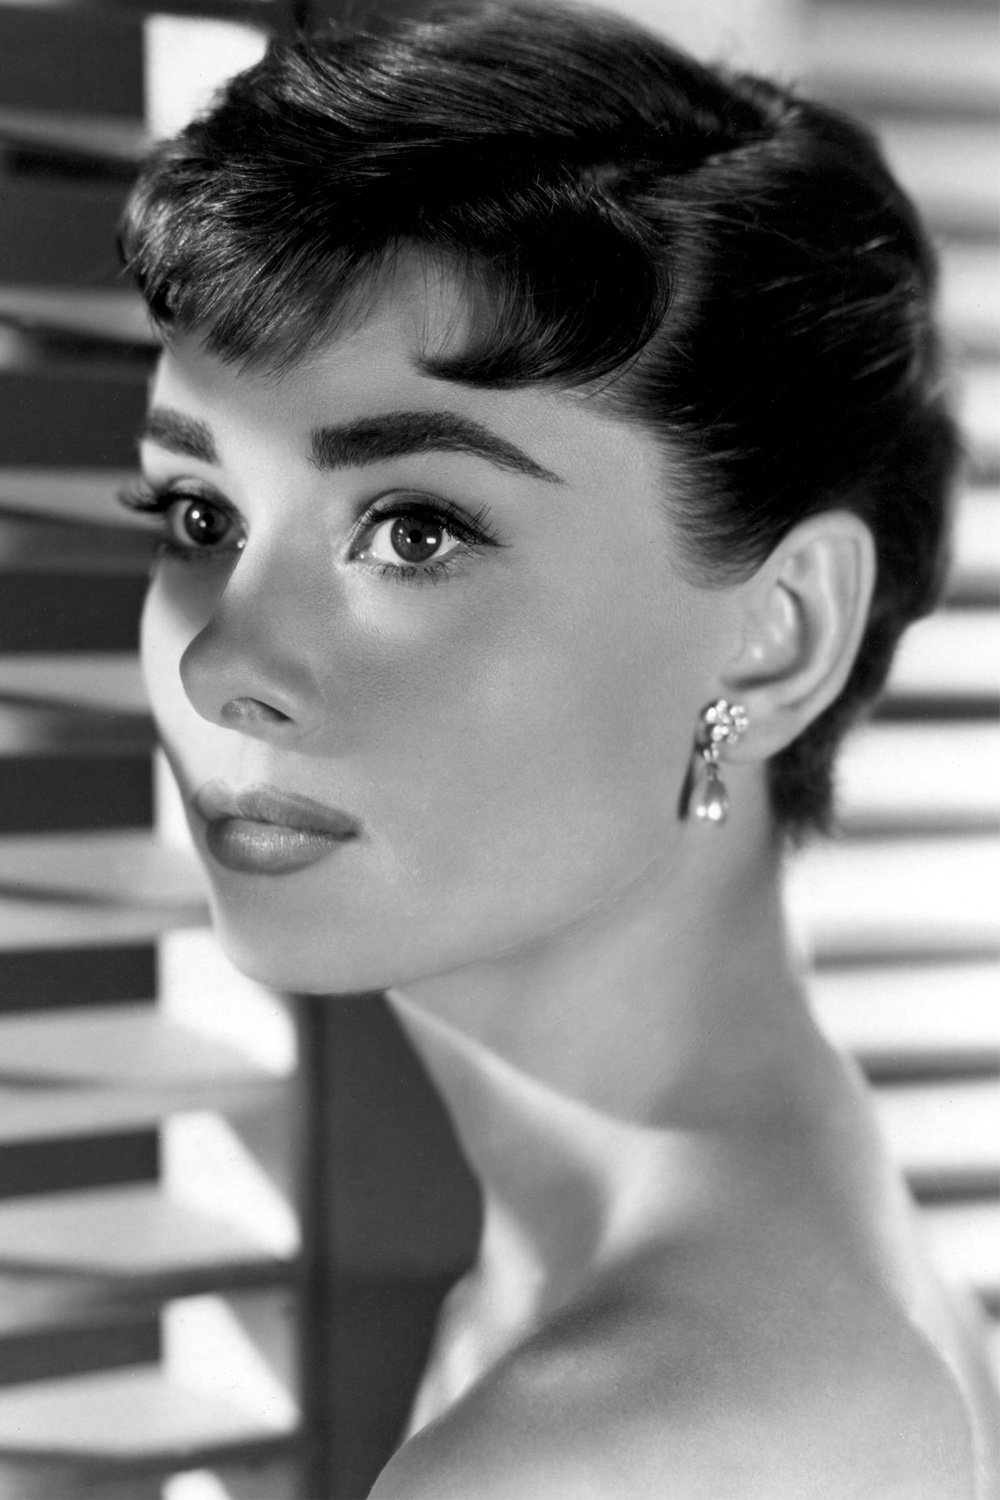 Awe Inspiring Audrey Hepburn39S Best Hairstyles From Breakfast At Tiffany39S To Short Hairstyles For Black Women Fulllsitofus